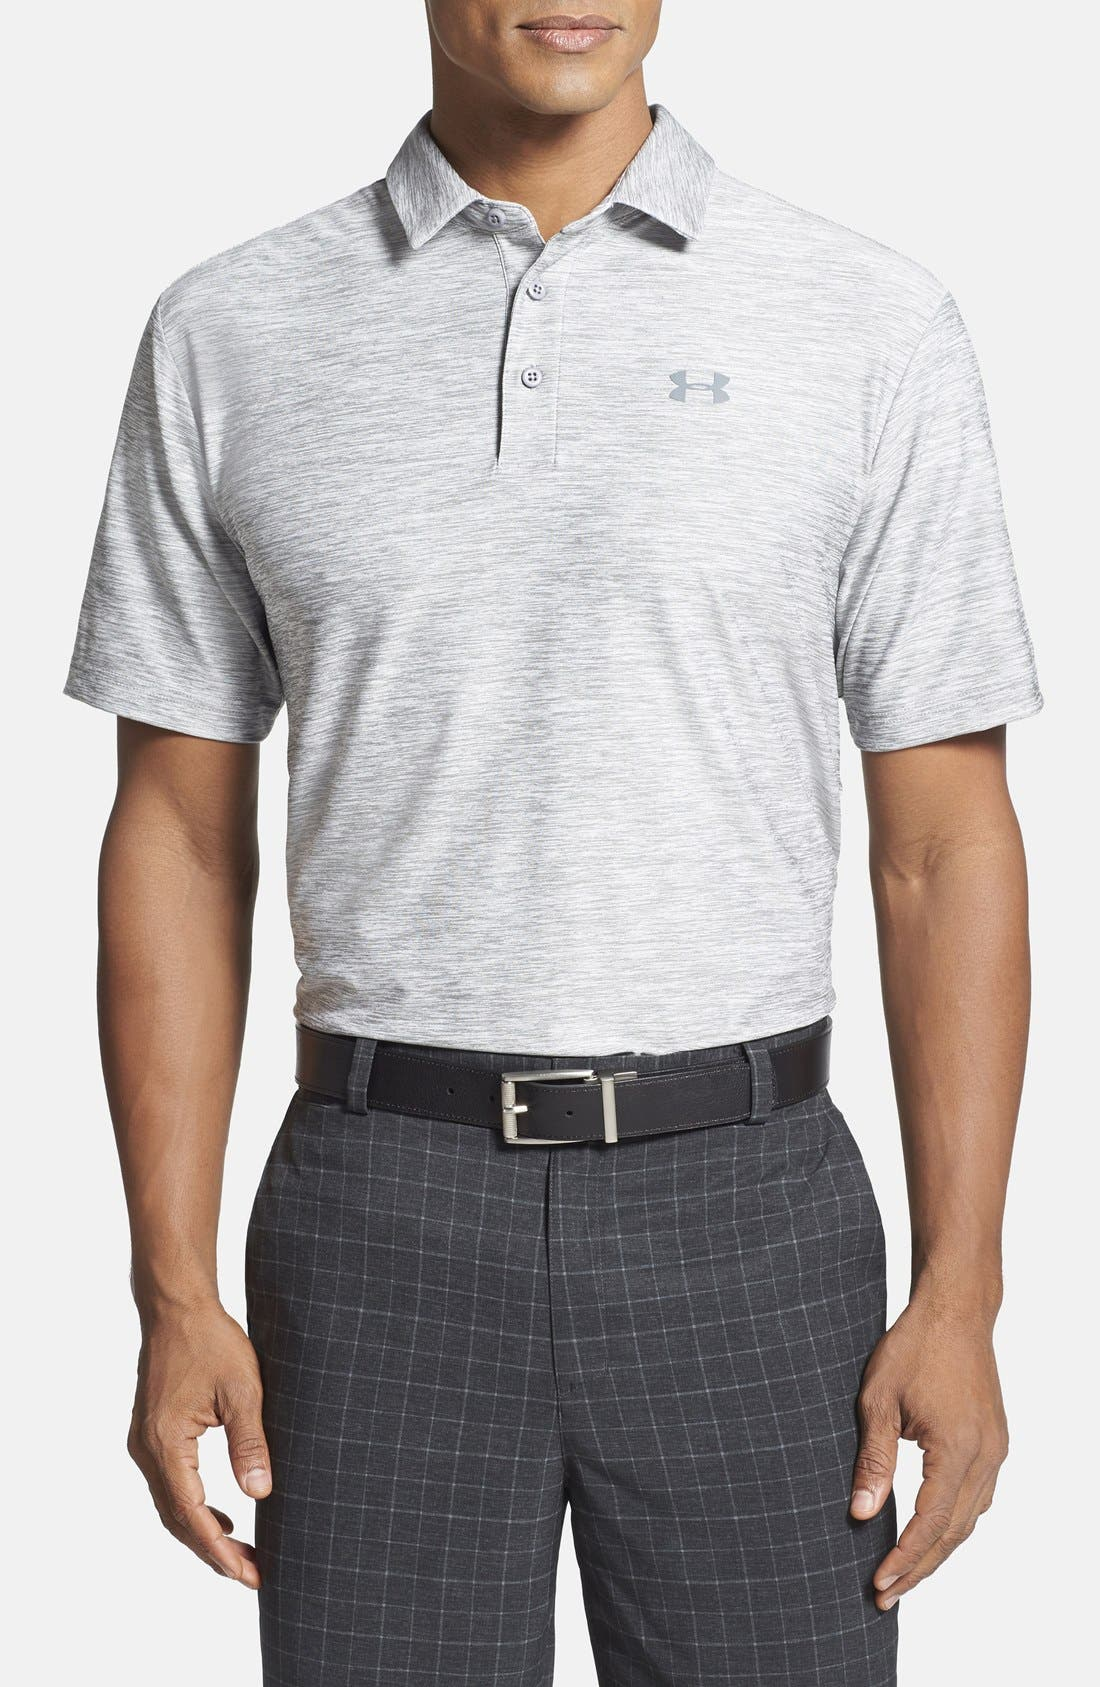 Under Armour 'Playoff' Loose Fit Short Sleeve Polo